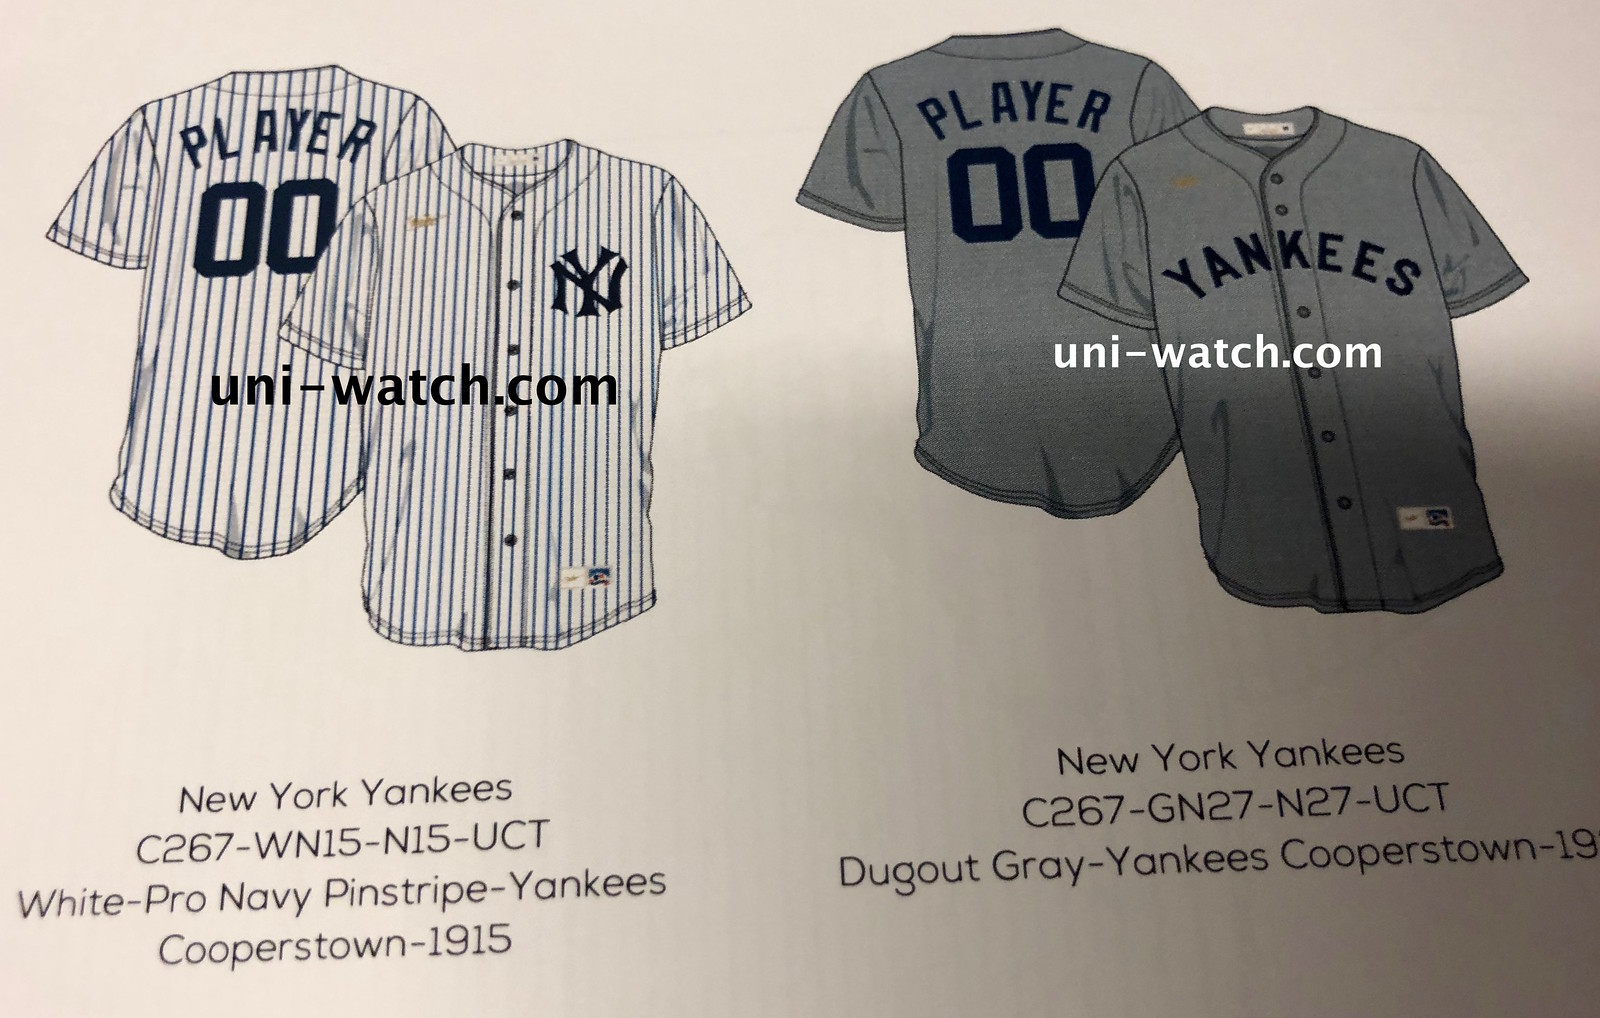 1a66e156 It's hard to see, especially on the grey mock-up on the right, but both of  those jerseys have a gold splotch or squiggle instead of the Nike logo.